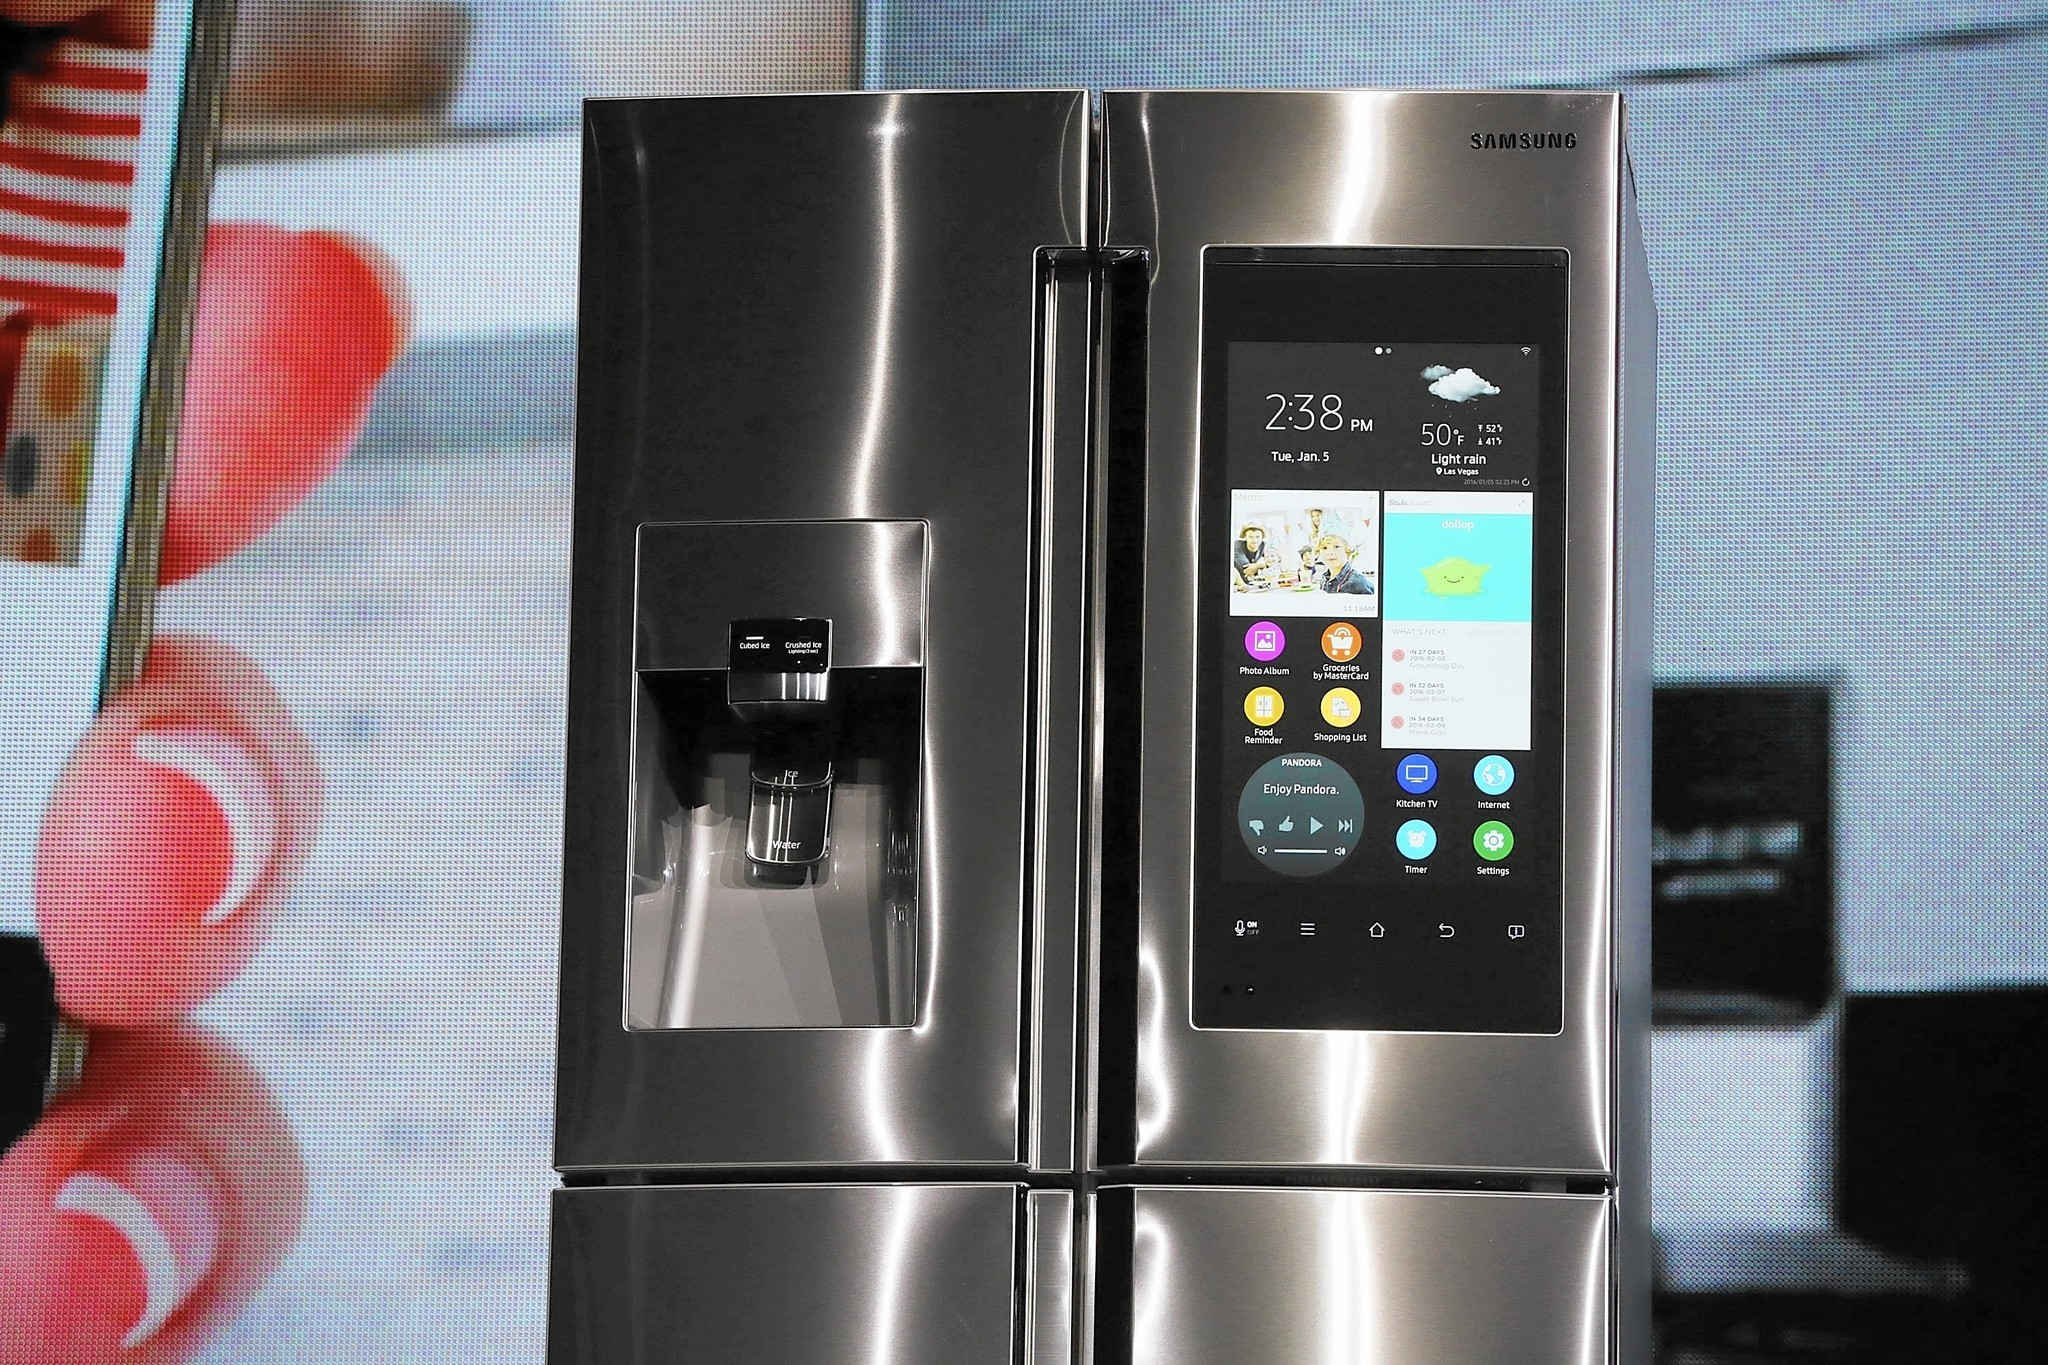 samsung tv refrigerator. our privacy is losing out to internet-connected household devices - la times samsung tv refrigerator